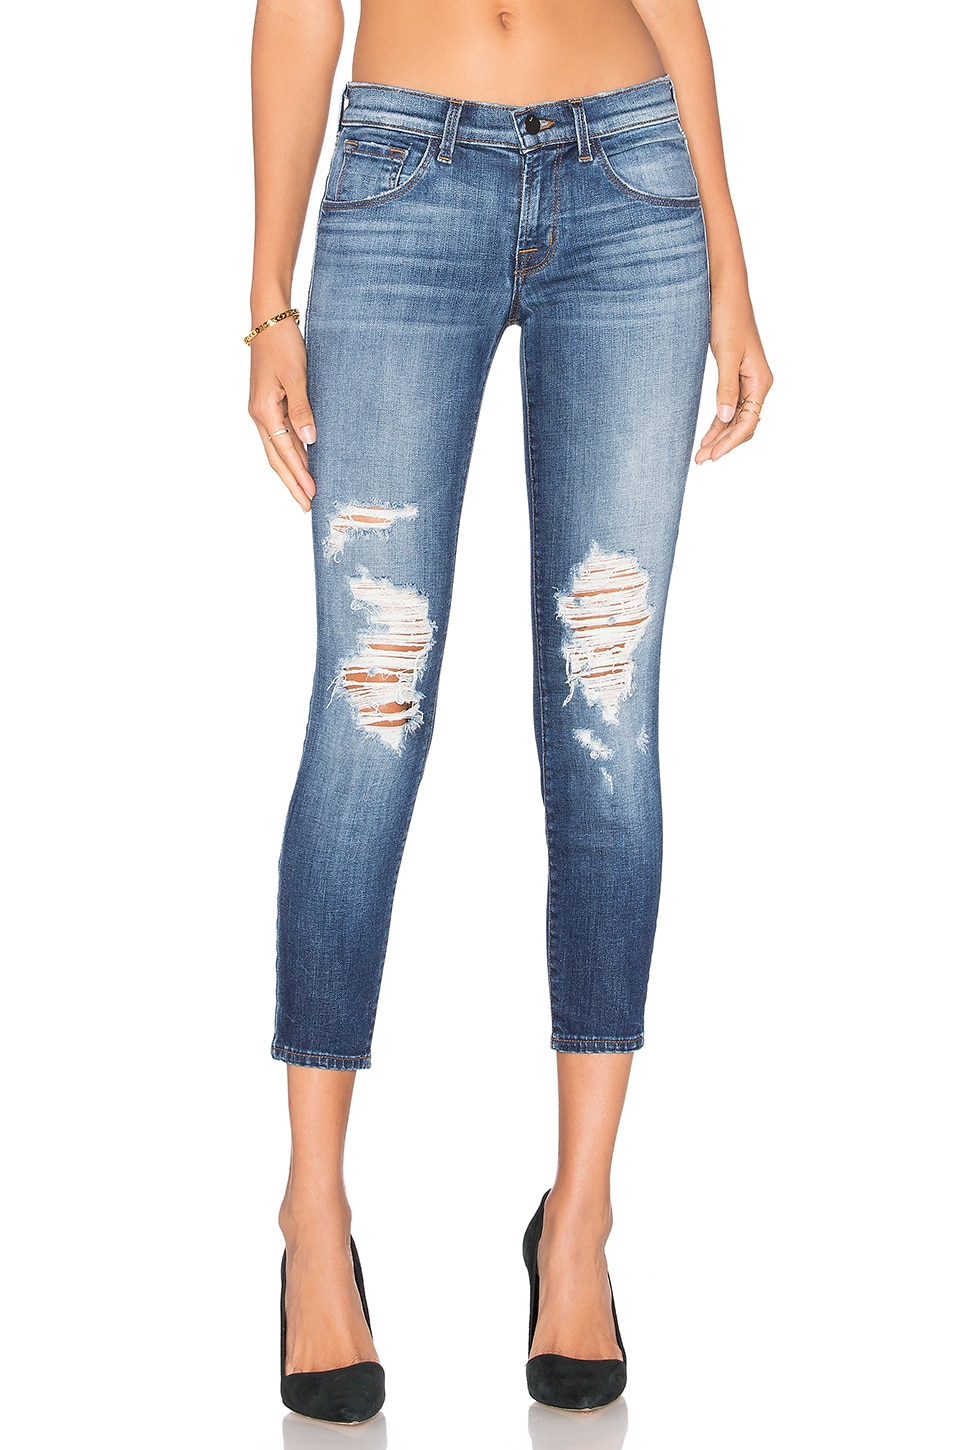 J Brand Distressed Skinny in Decoy Destructed